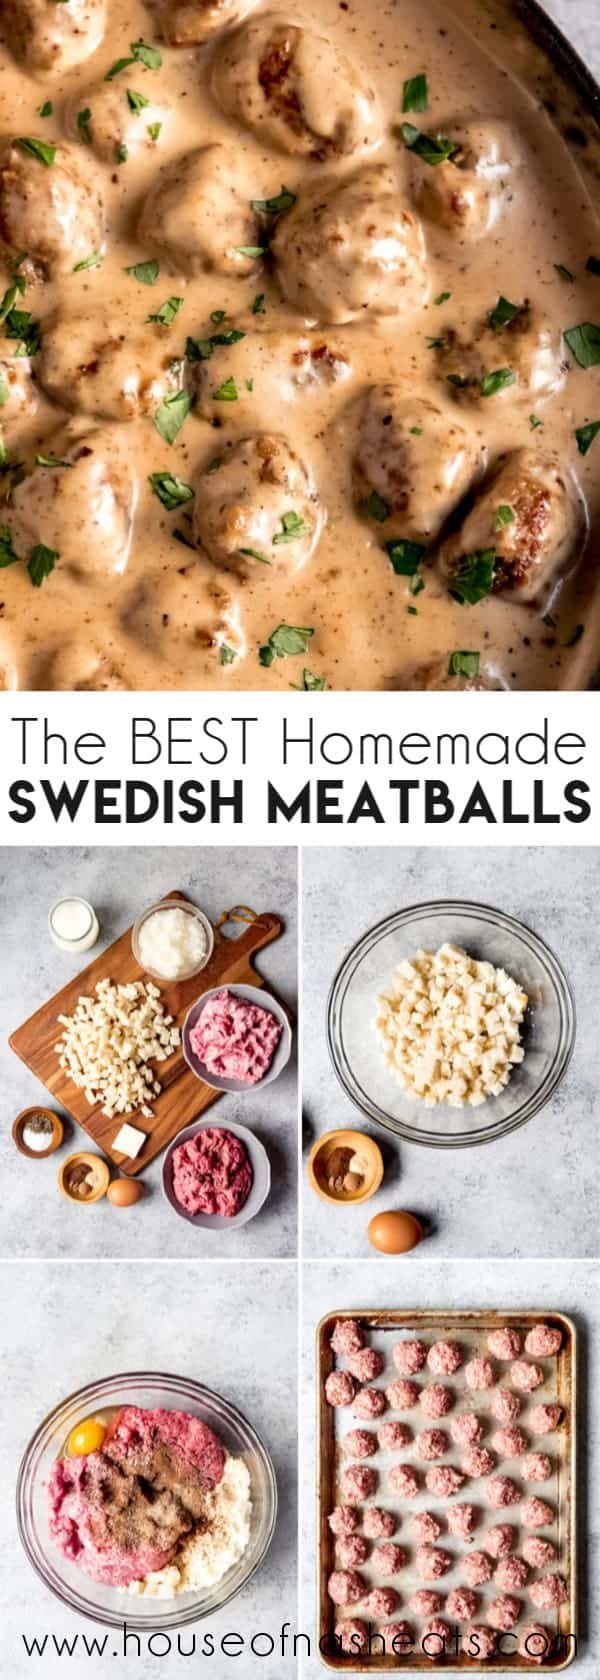 Easy Swedish Meatballs In A Creamy Sauce House Of Nash Eats